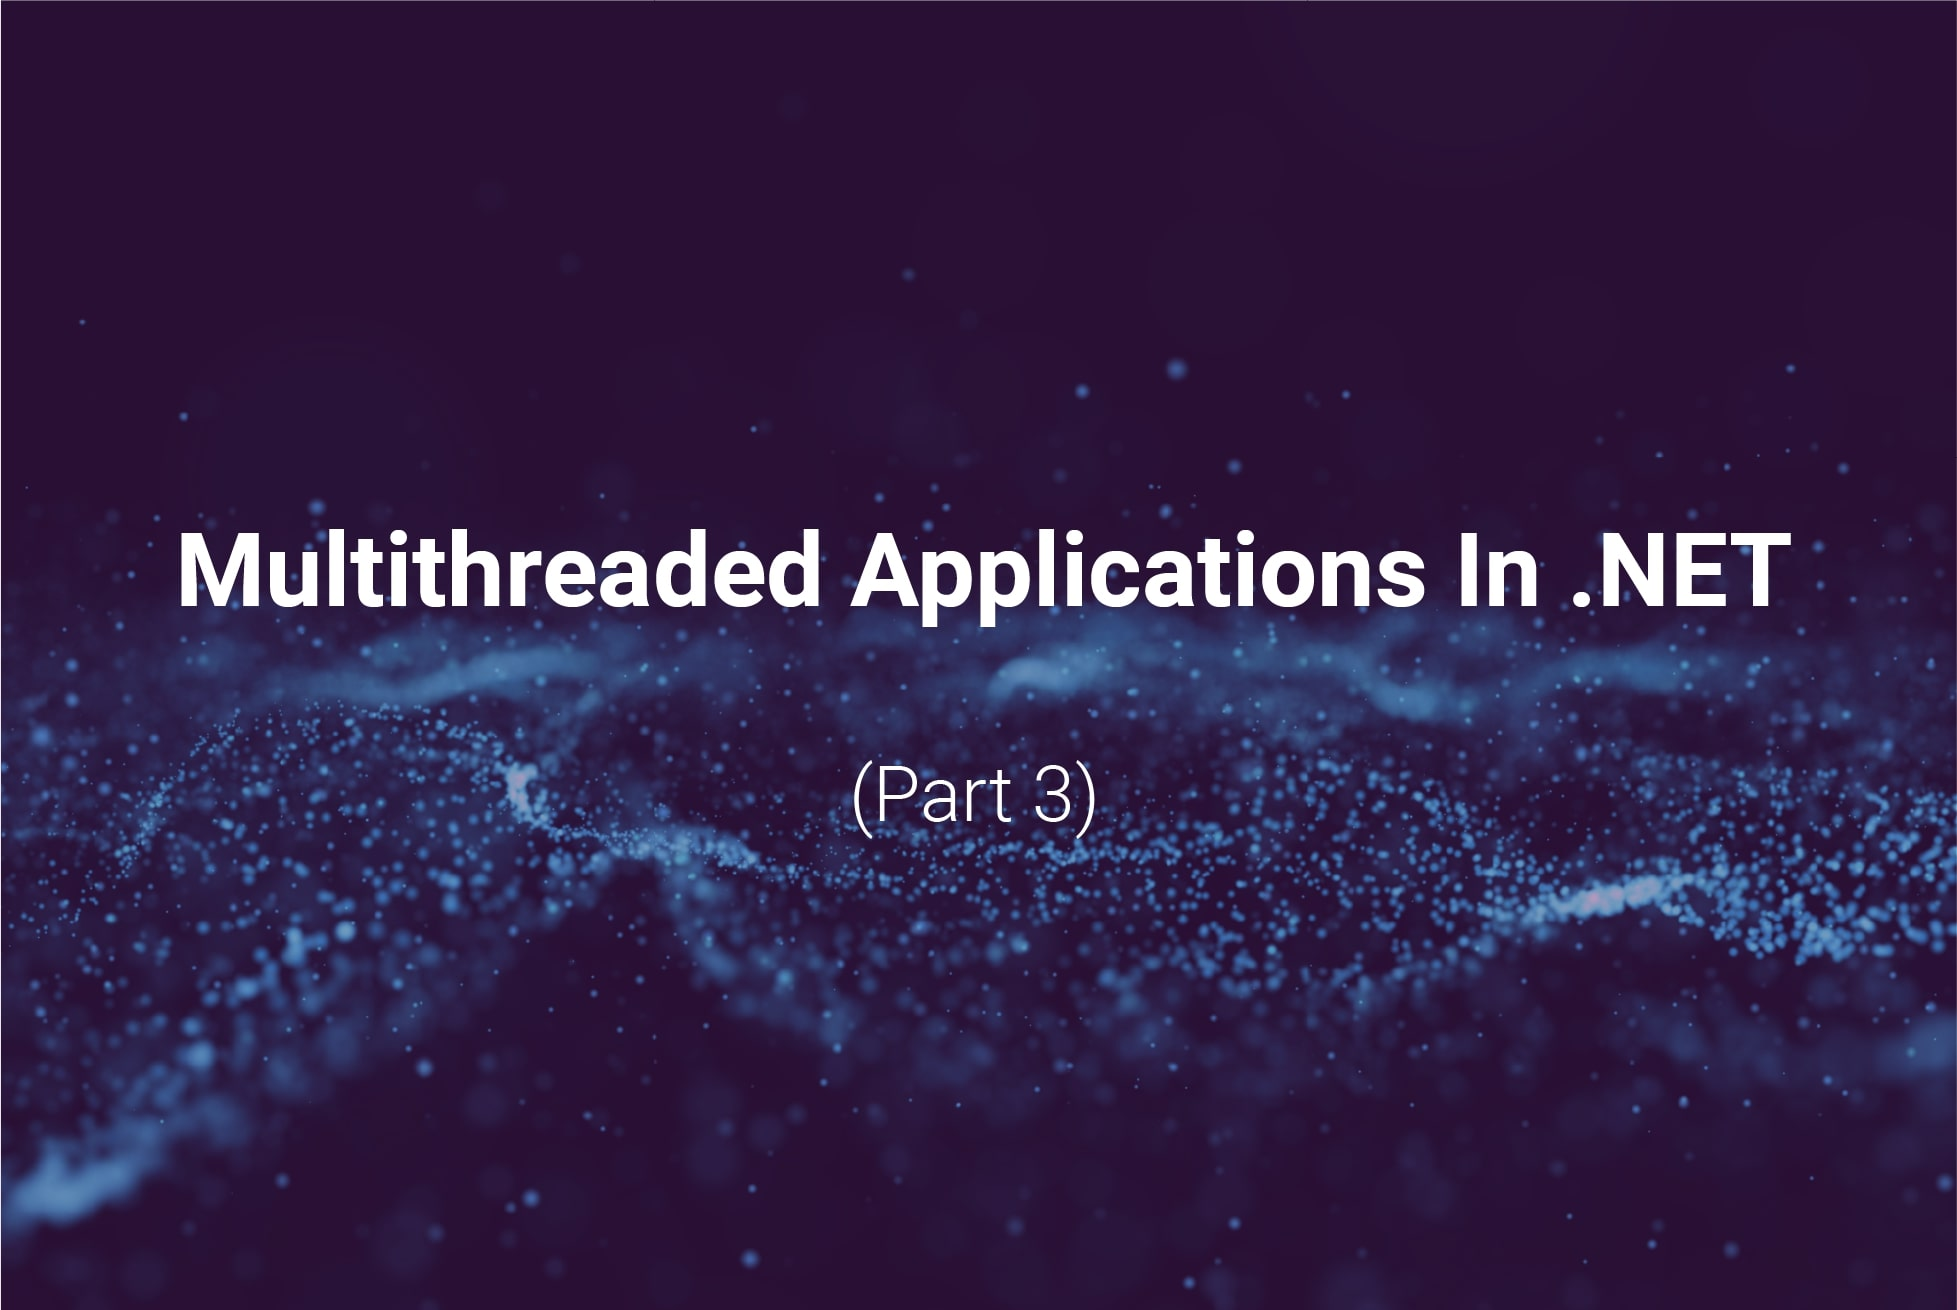 Ways of creating multi-threaded applications in .NET  Part 3. TPL and PLINQ